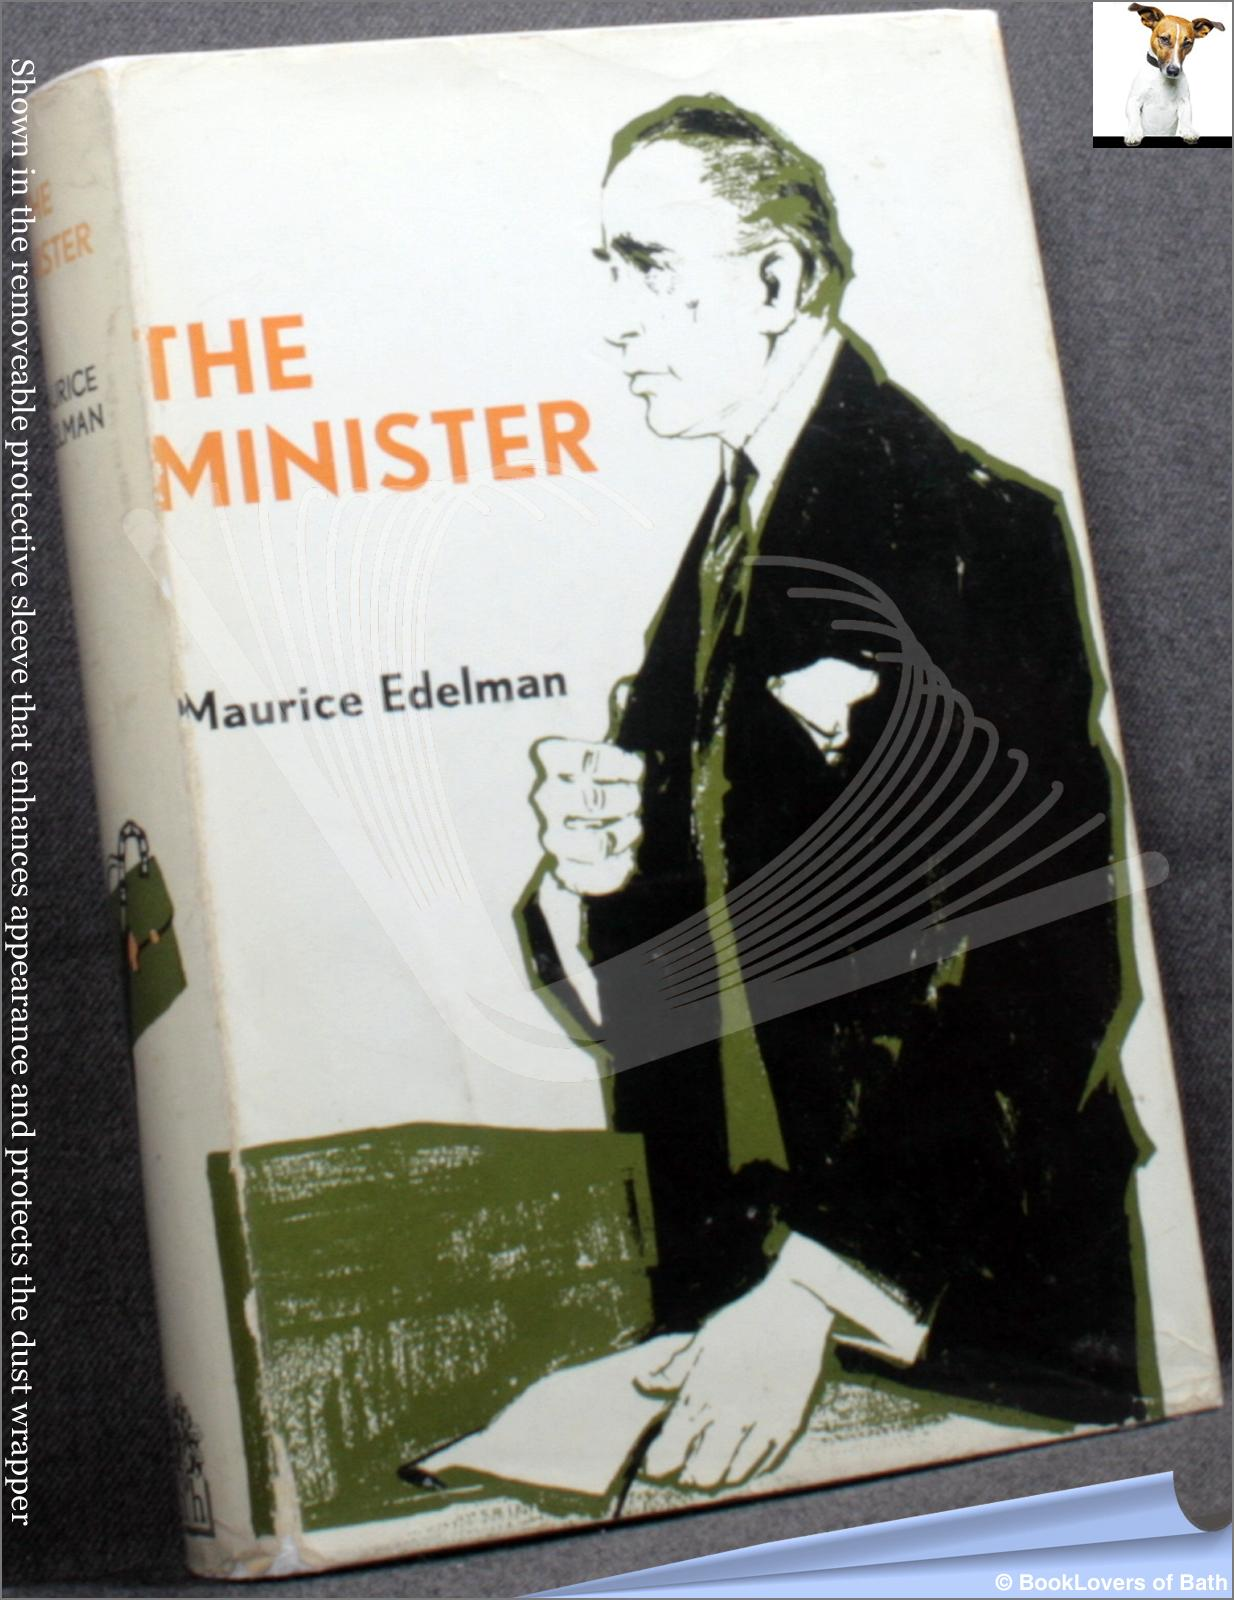 The Minister - Maurice Edelman